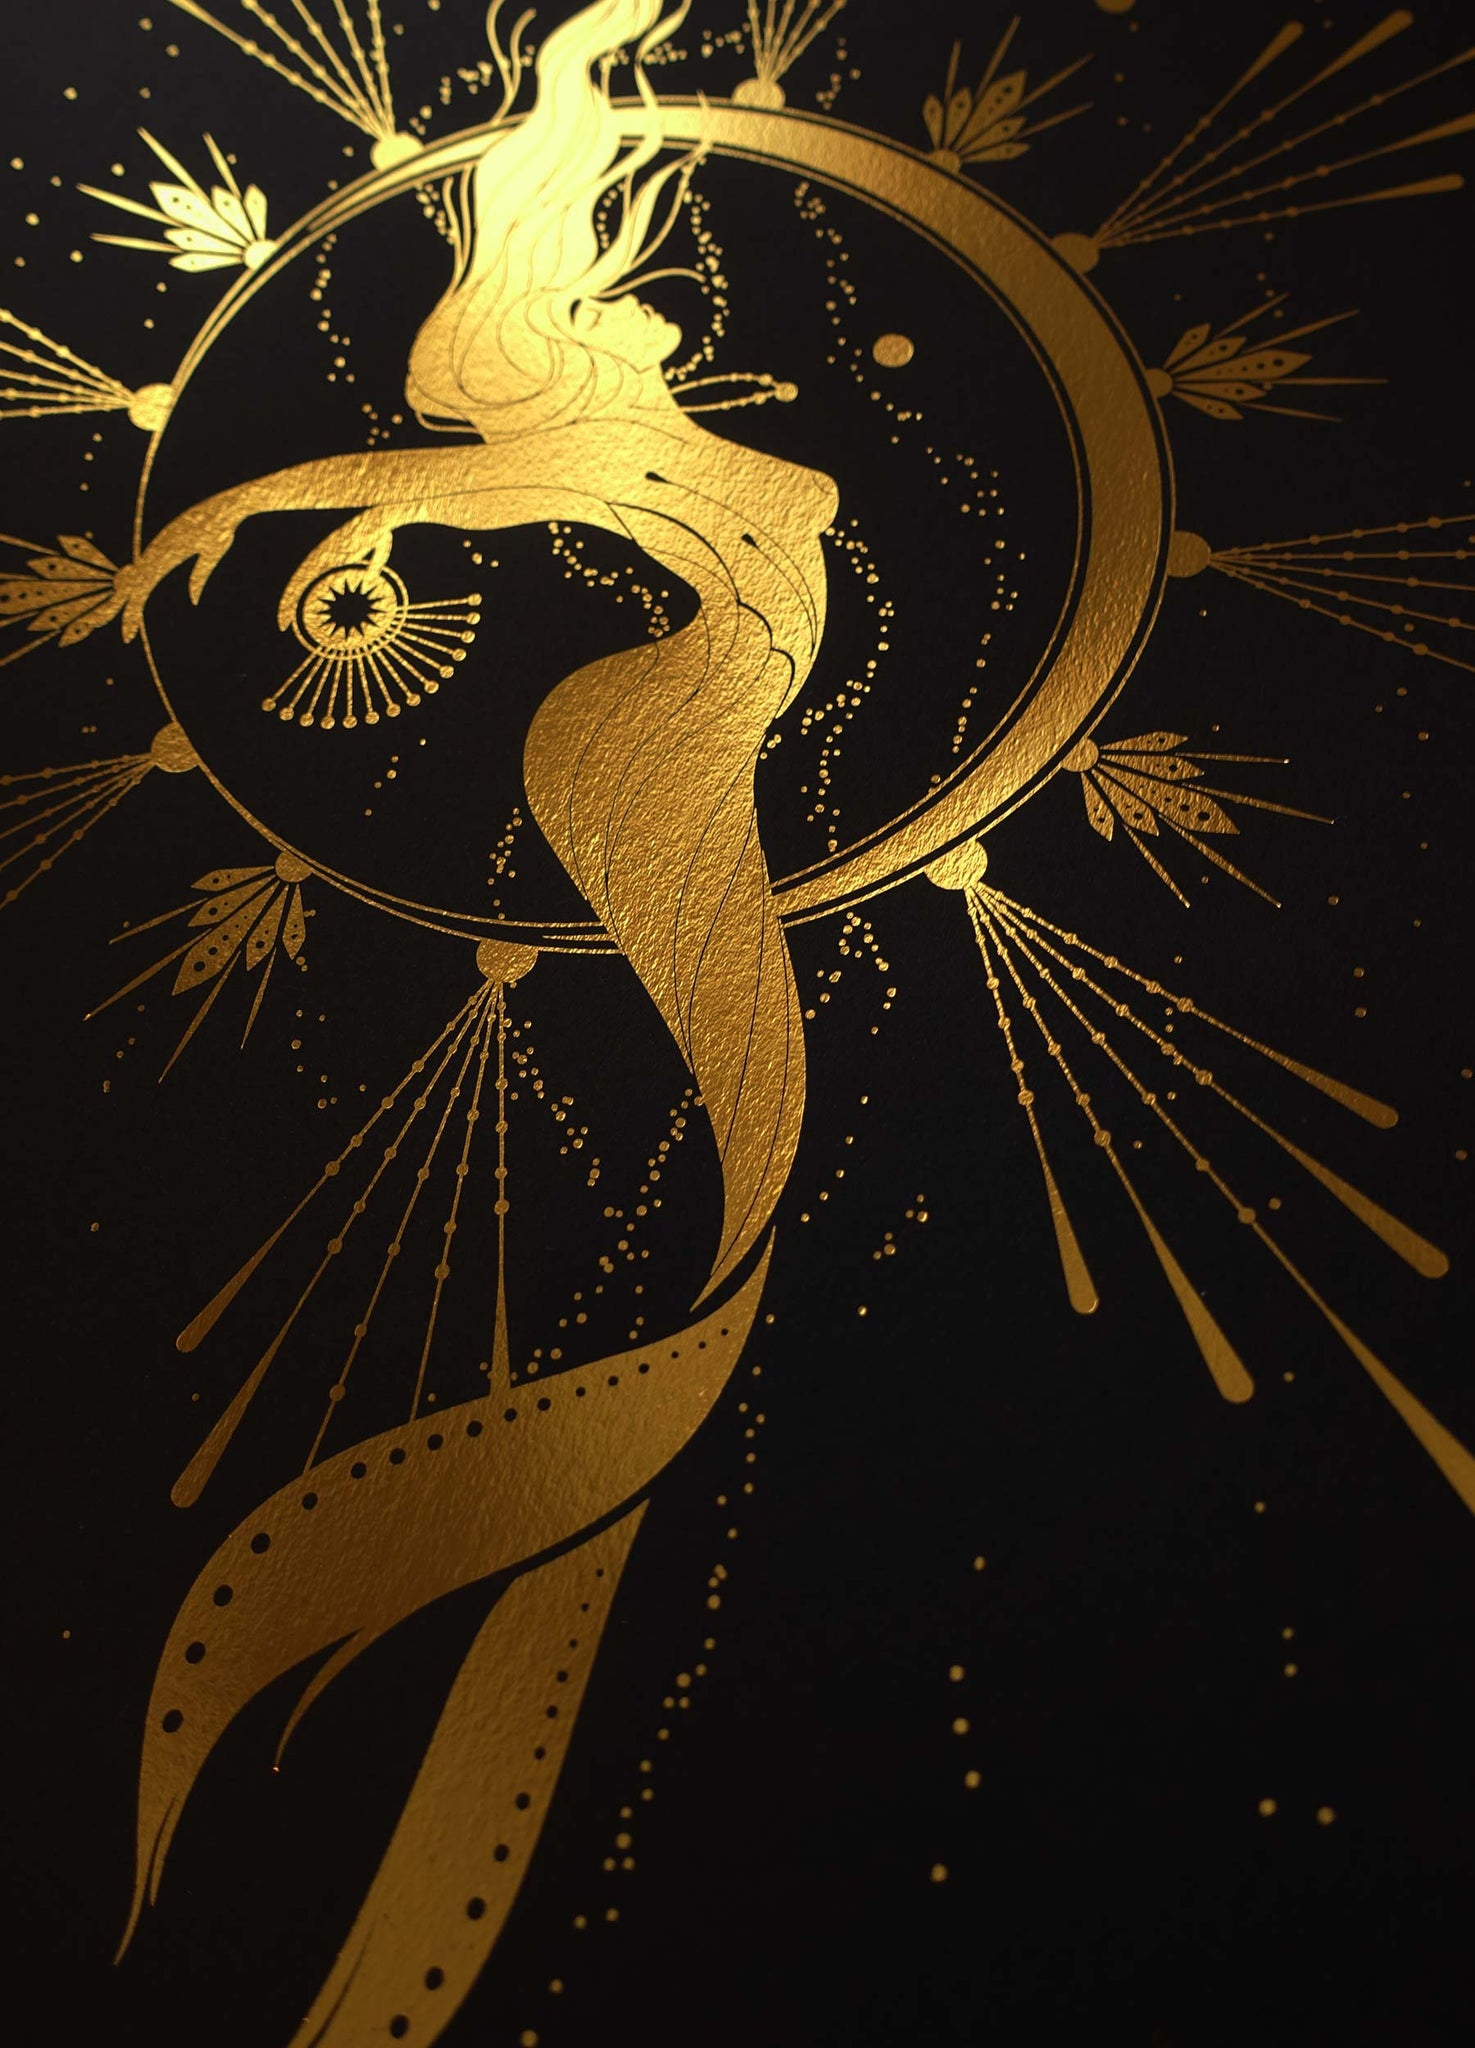 Mermaid under the Moonlight gold foil print on black paper by Cocorrina & Co Design studio